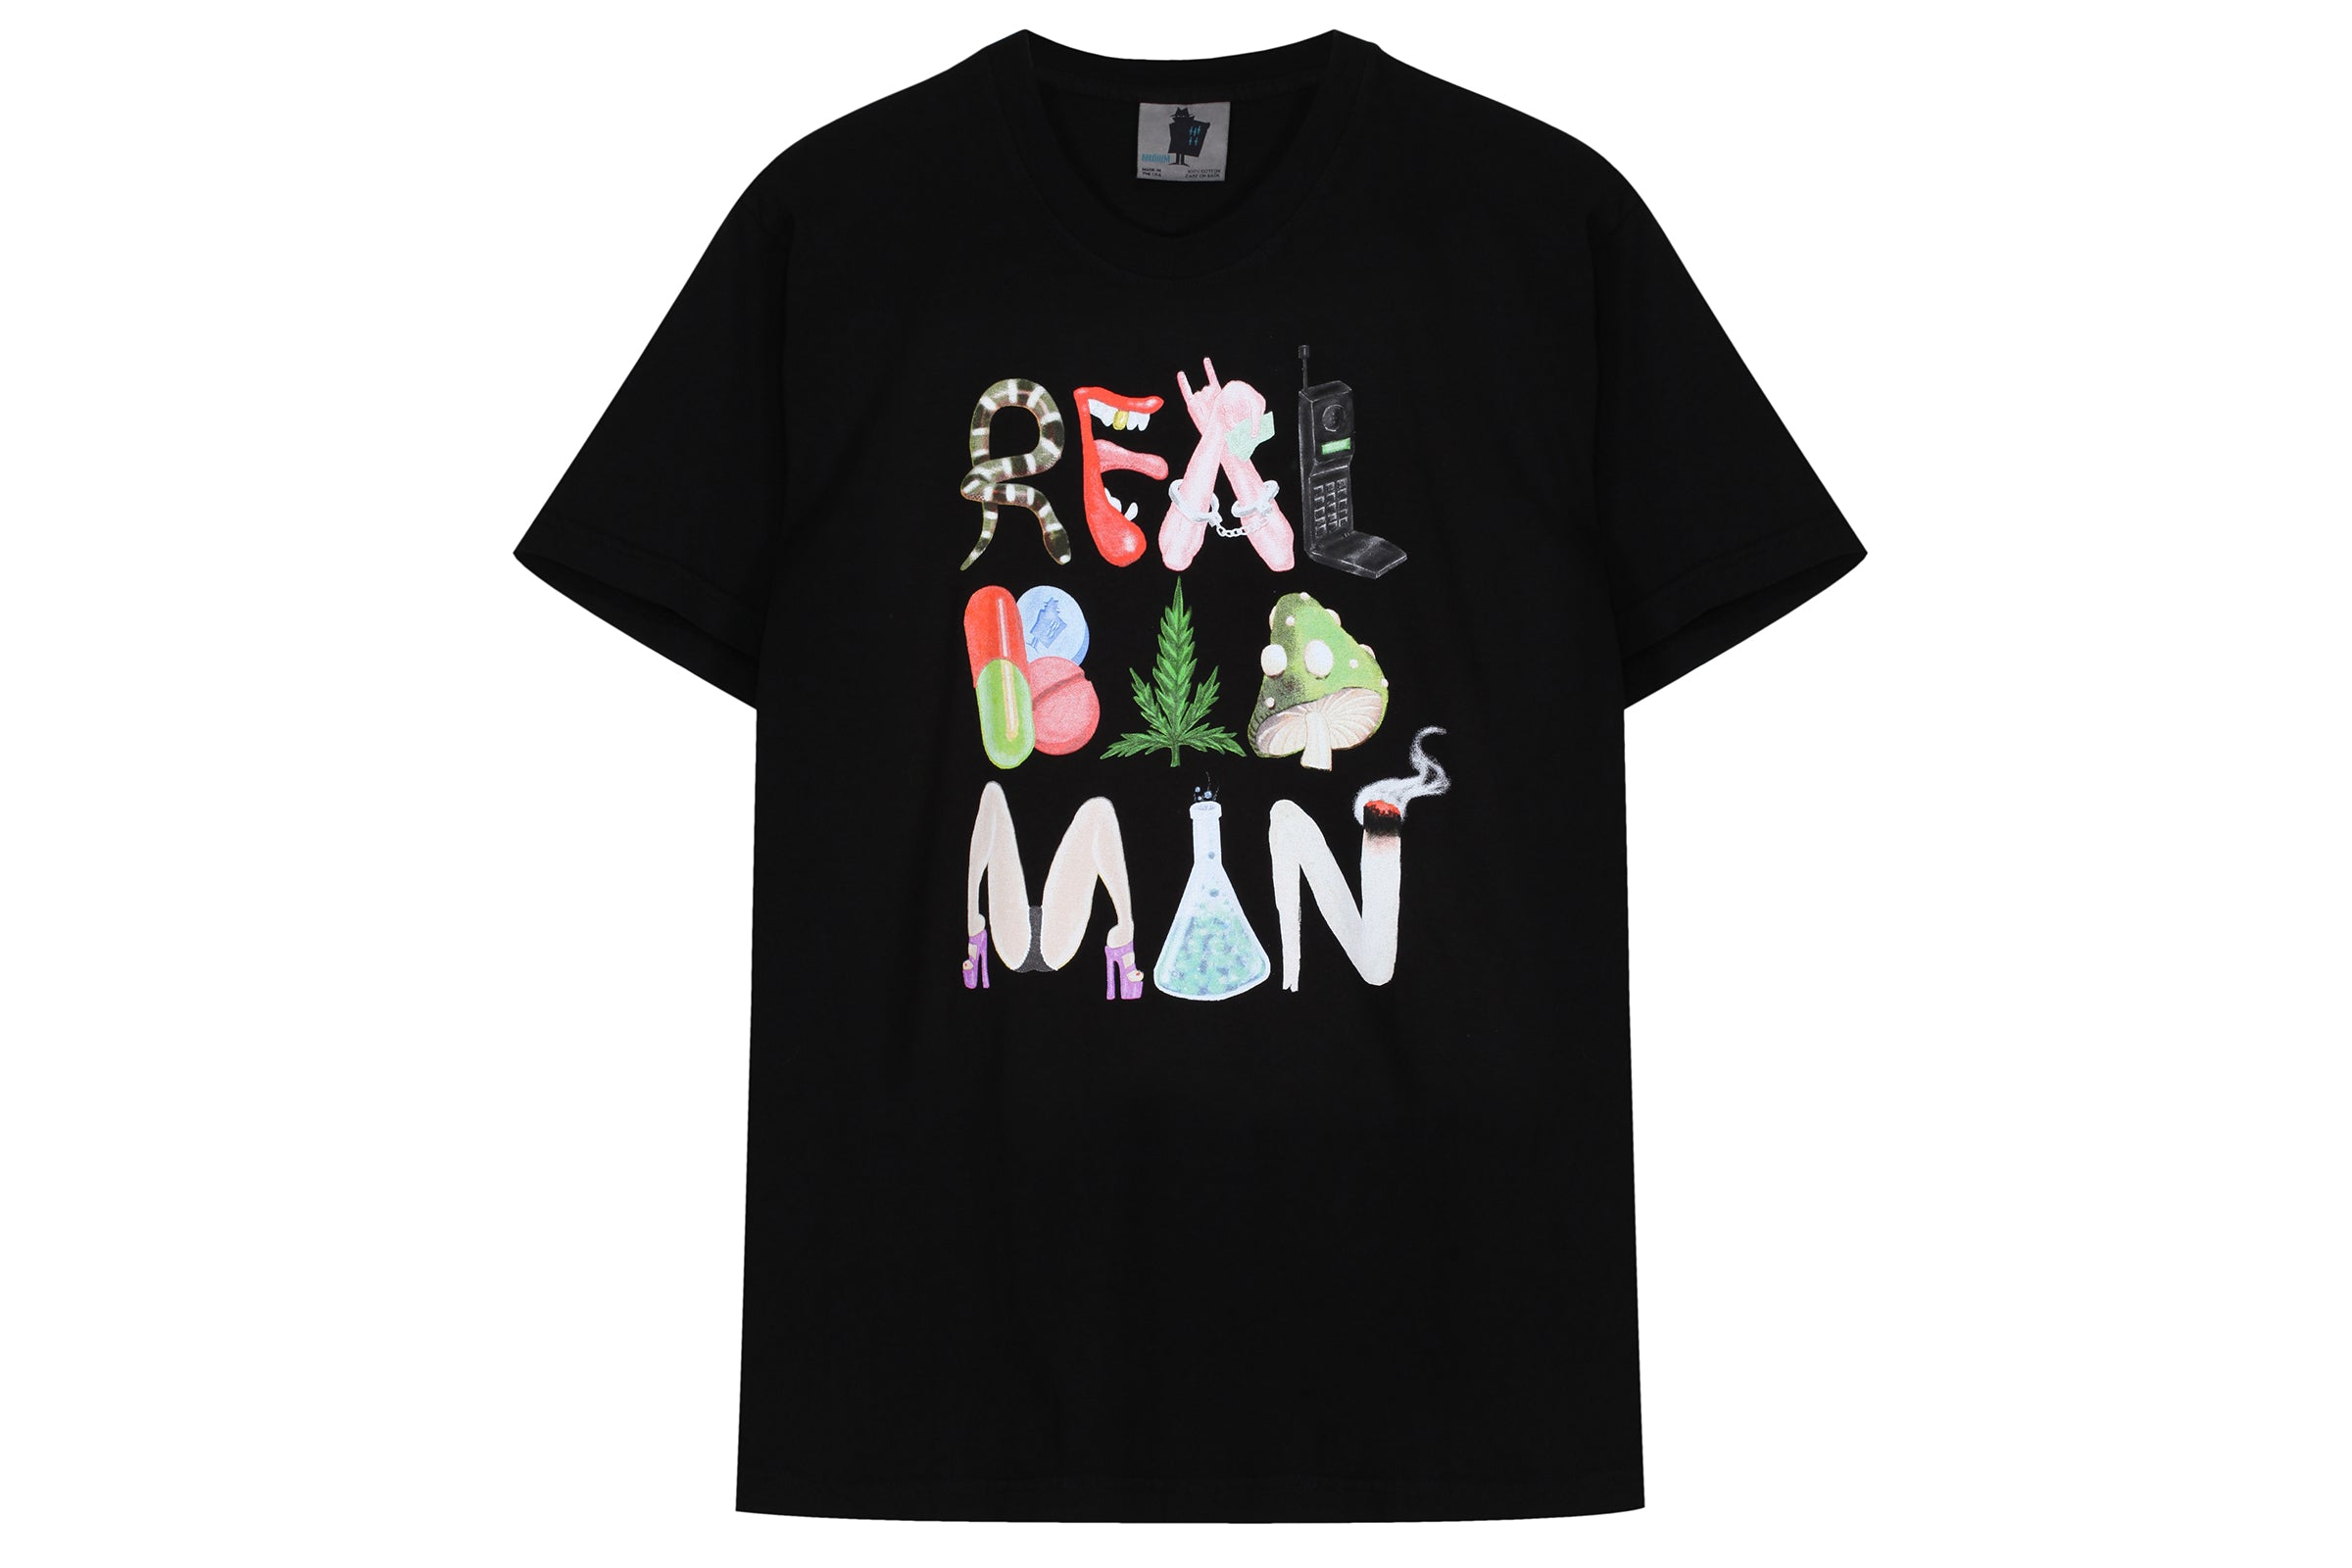 Real Bad Man Mad Vices Tee